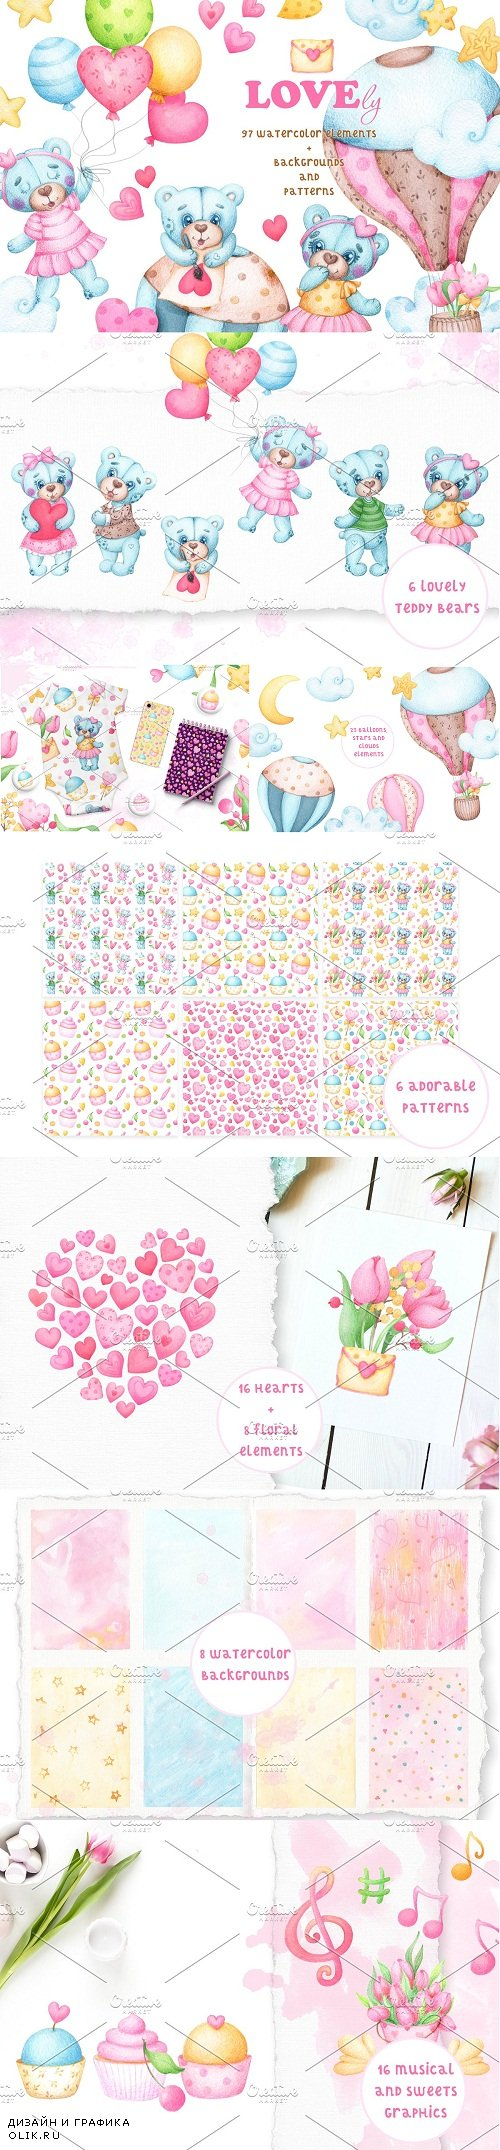 LOVELy watercolor collection - 3383188